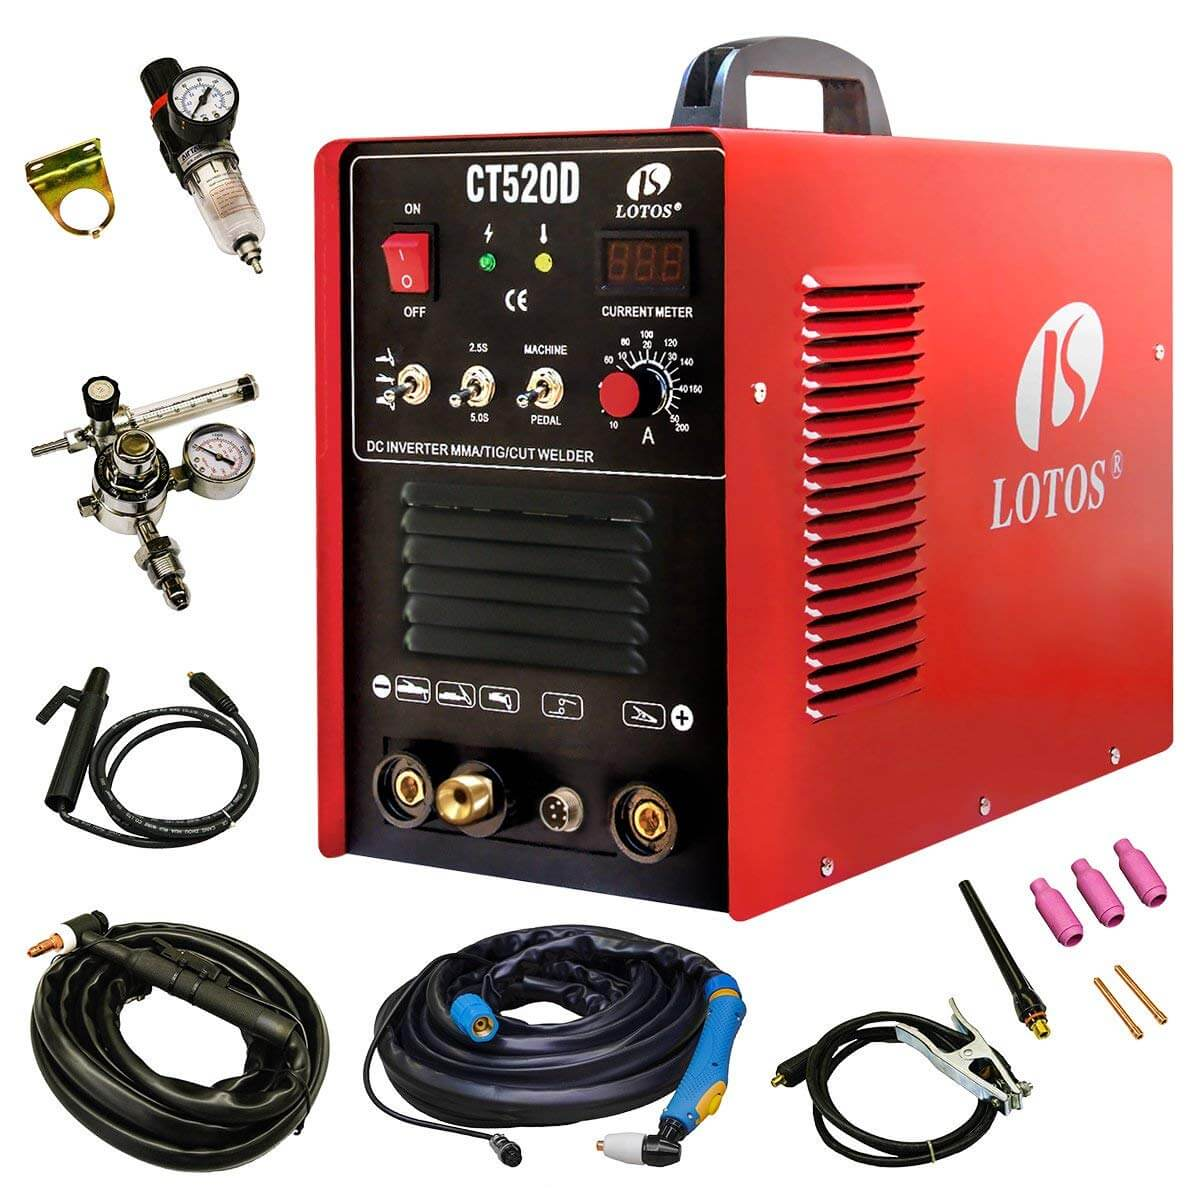 Lotos CT520D Multi-Process Welder Review